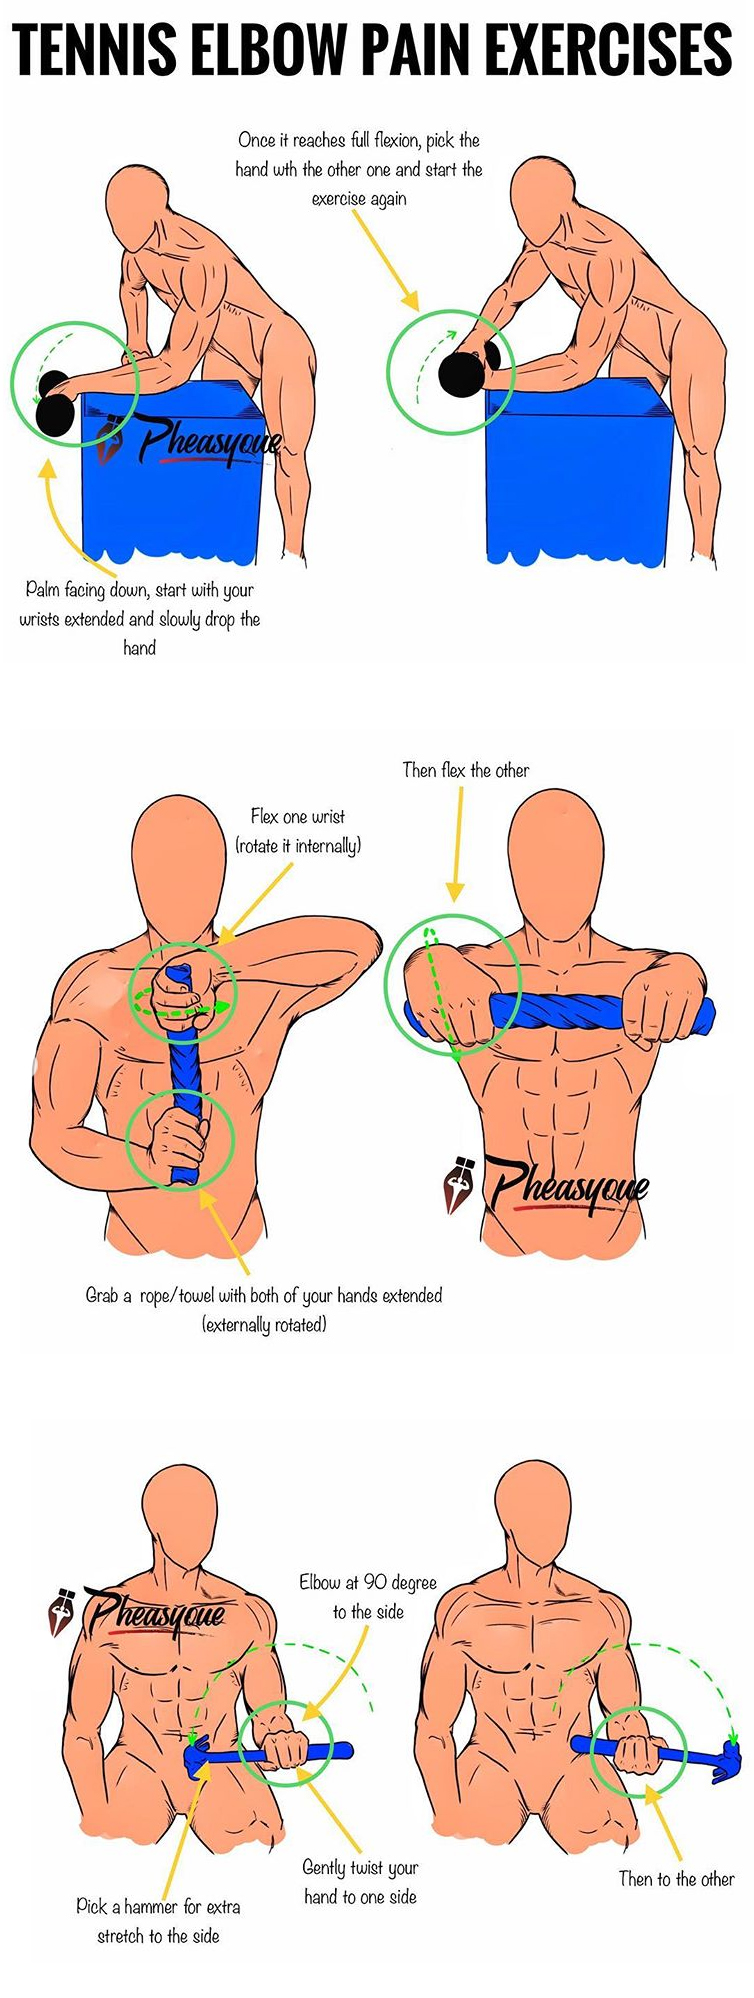 3 TENNIS ELBOW EXERCISES